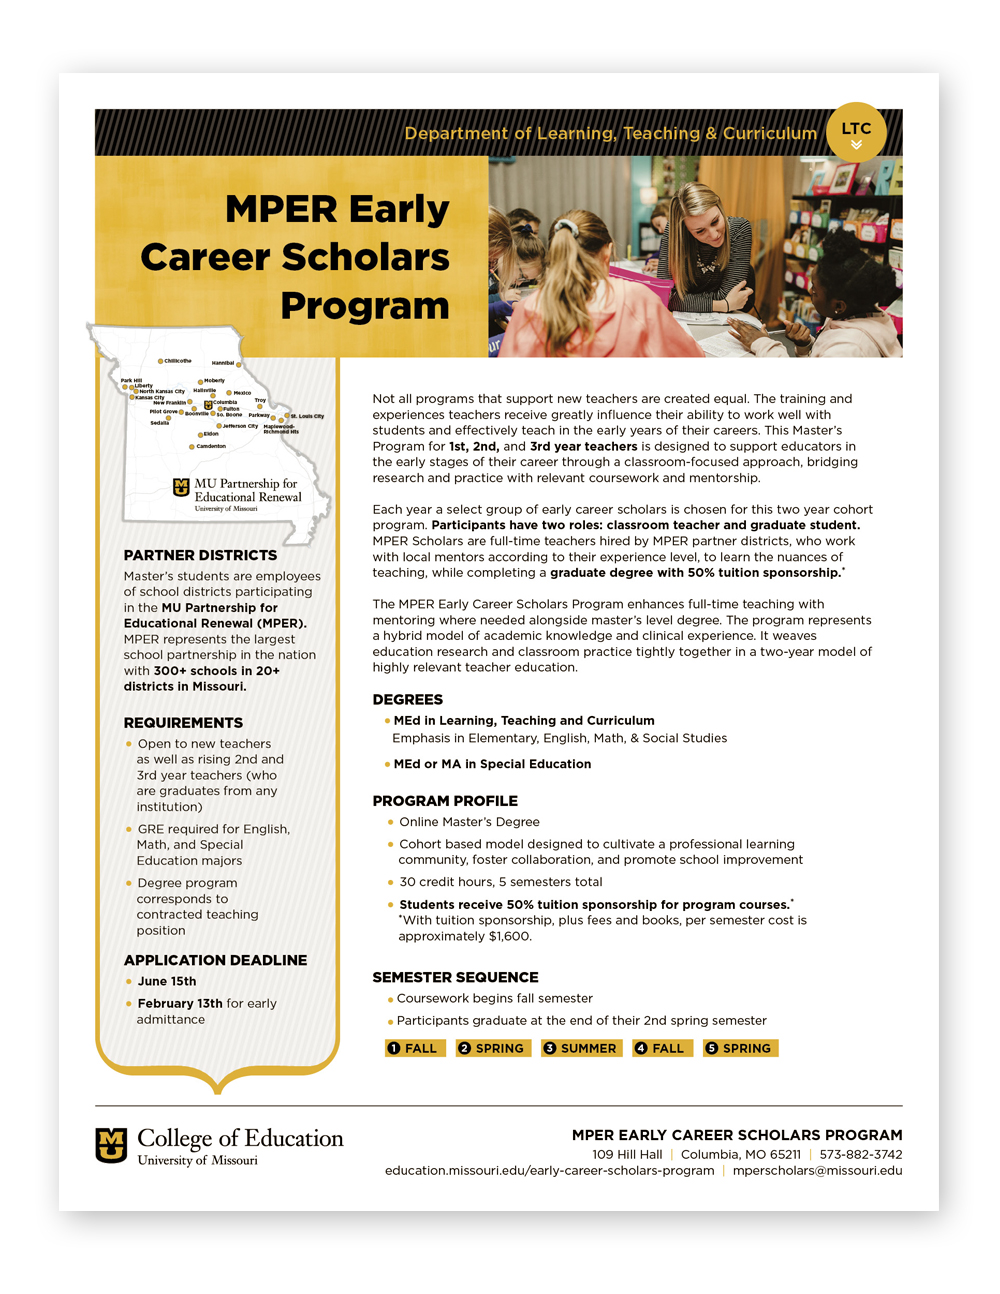 University of Missouri College of Education MPER Early Career Scholars Program, Online Master's for beginning teachers, Info Sheet, 2018